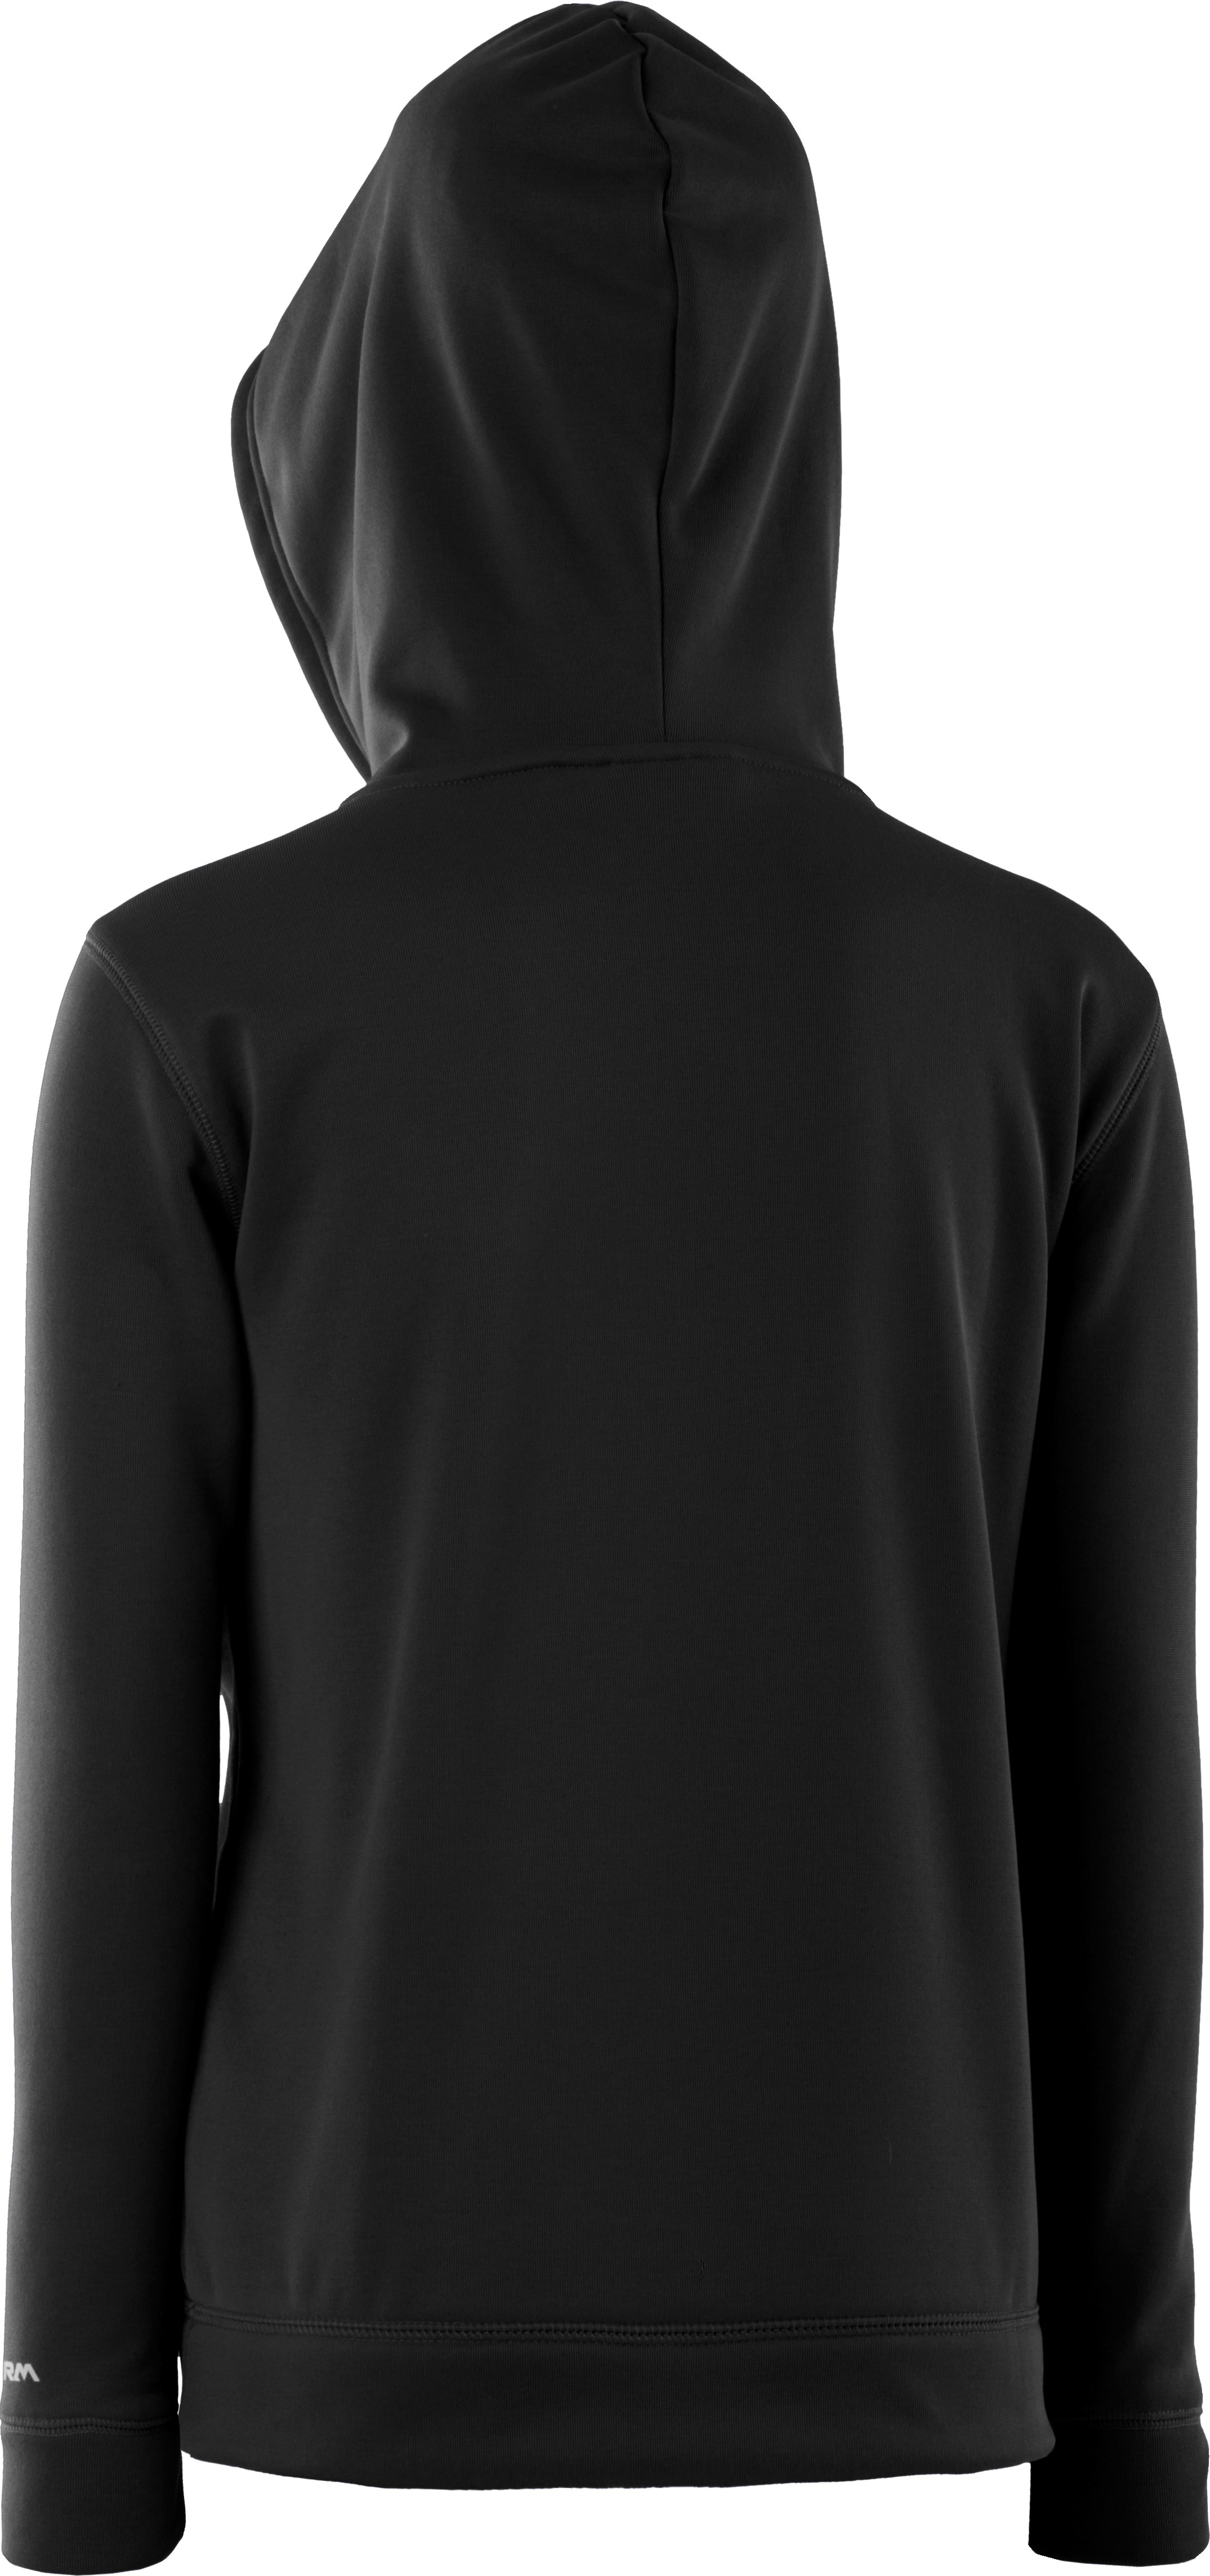 Boys' Under Armour® Armour® Fleece Storm Hoodie, Black , undefined